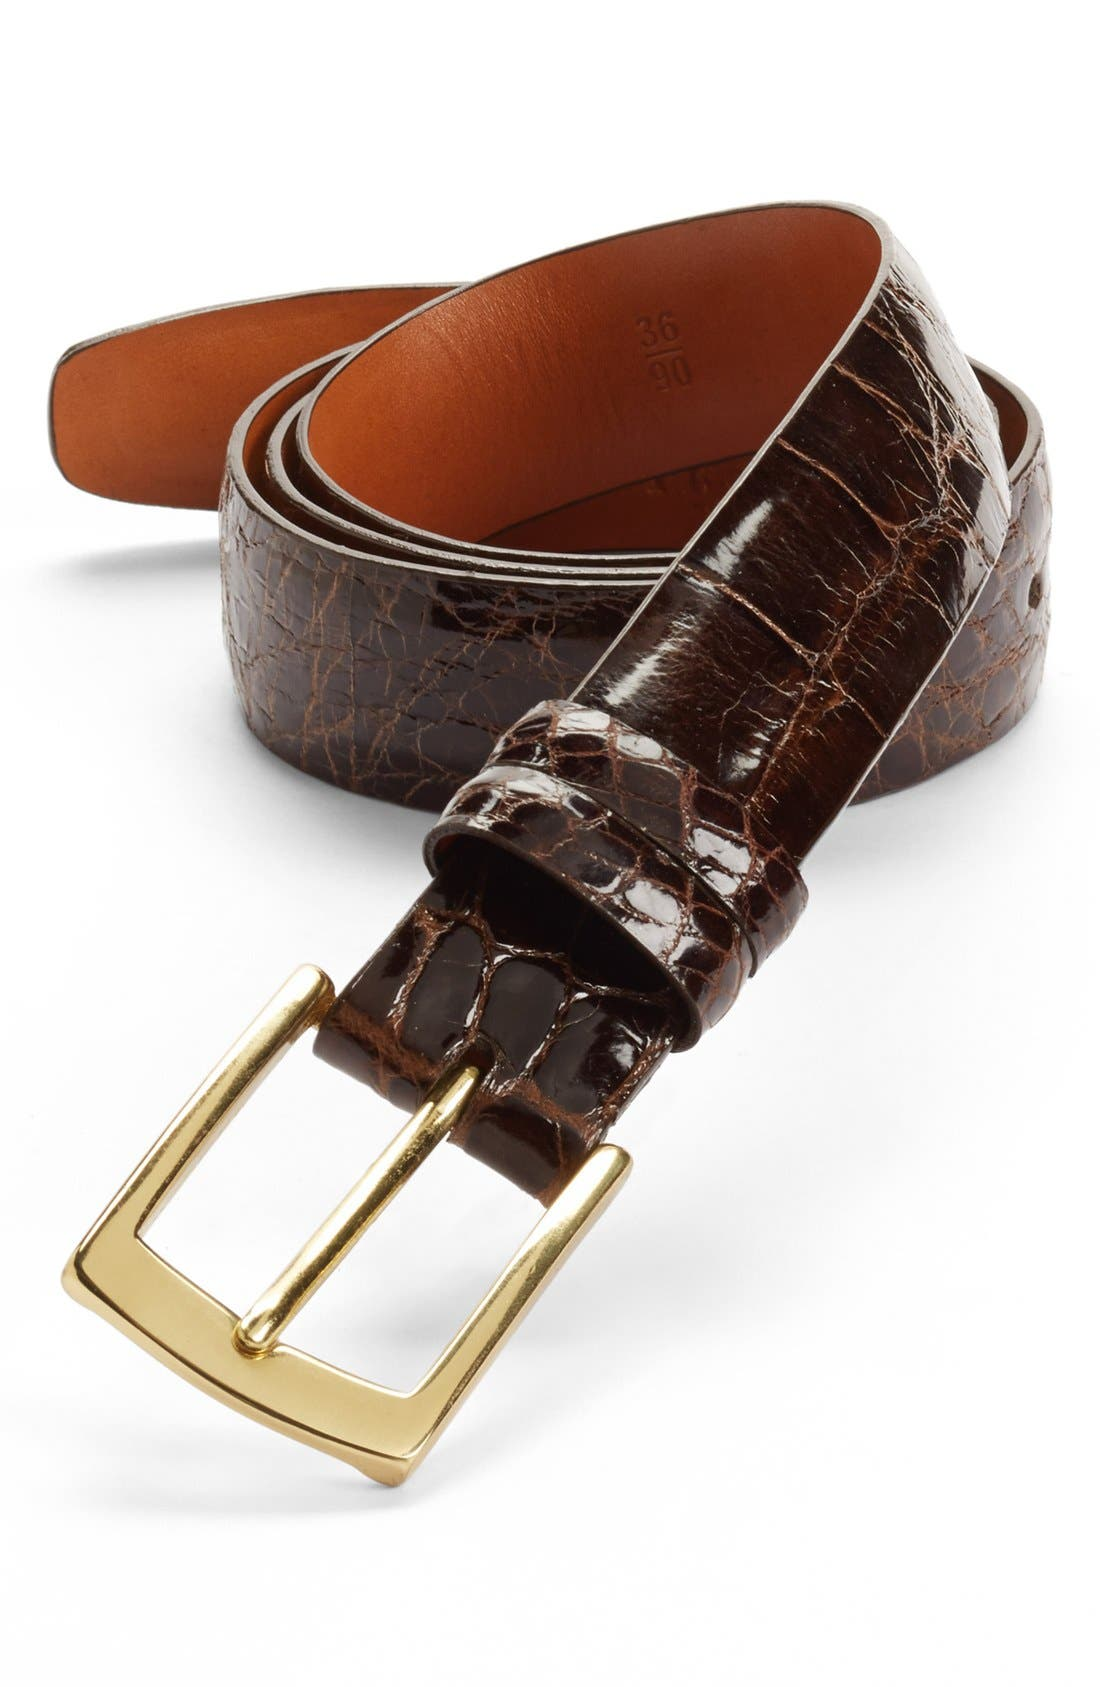 Main Image - Trafalgar Alligator Belt